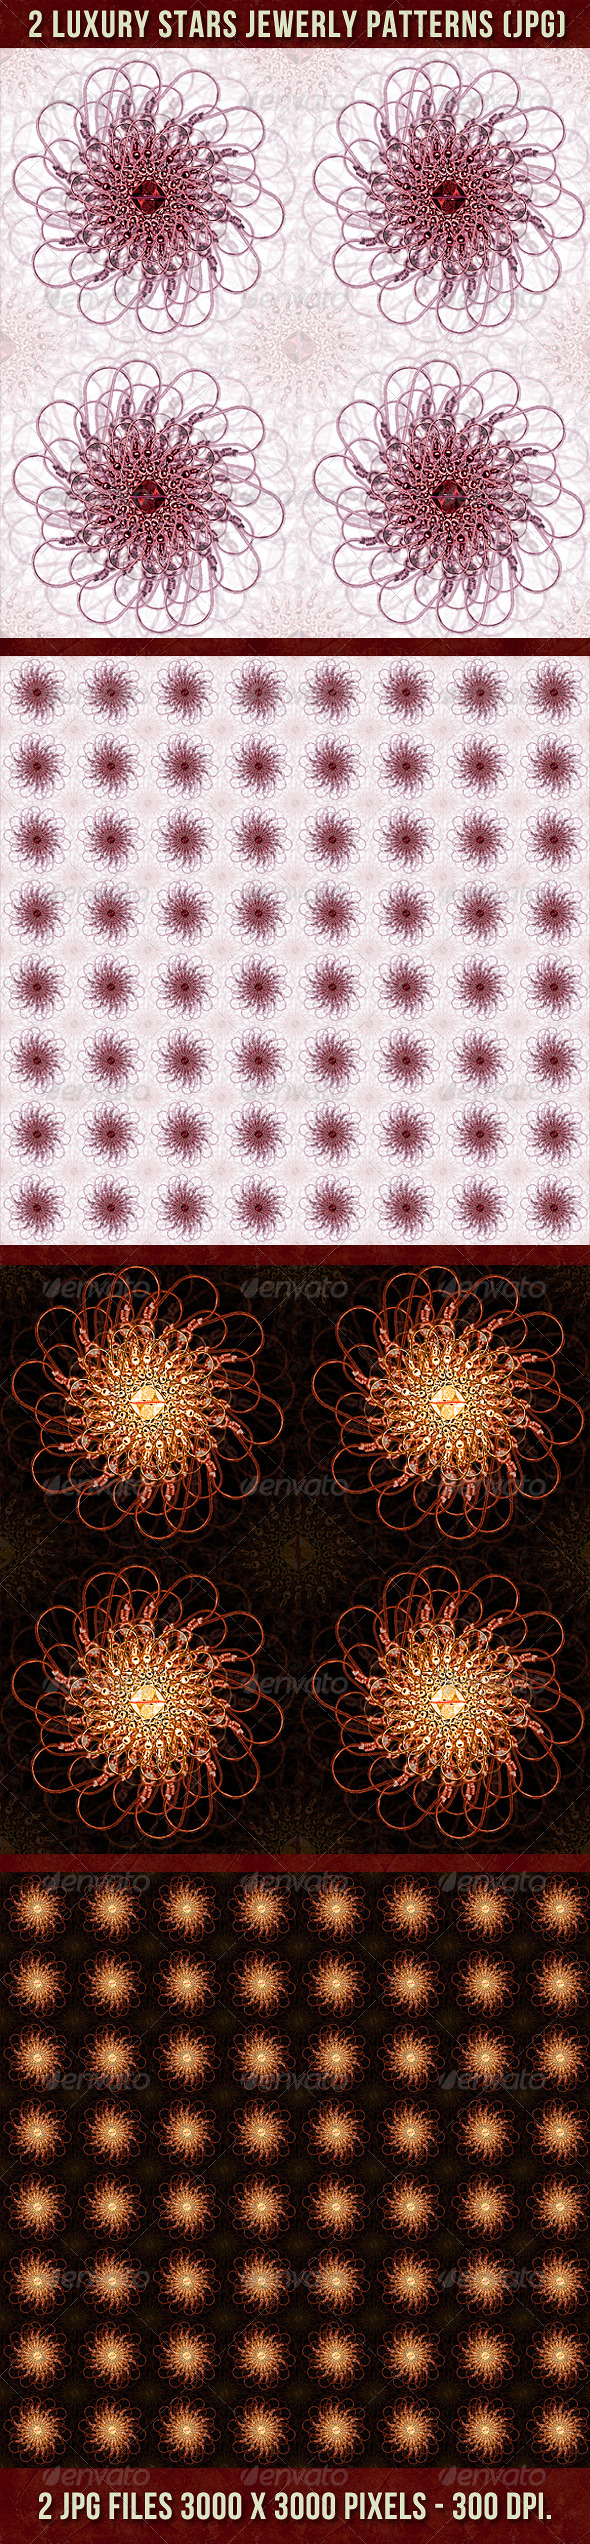 GraphicRiver 2 Luxury Stars Jewerly Patterns Backgrounds 4474423